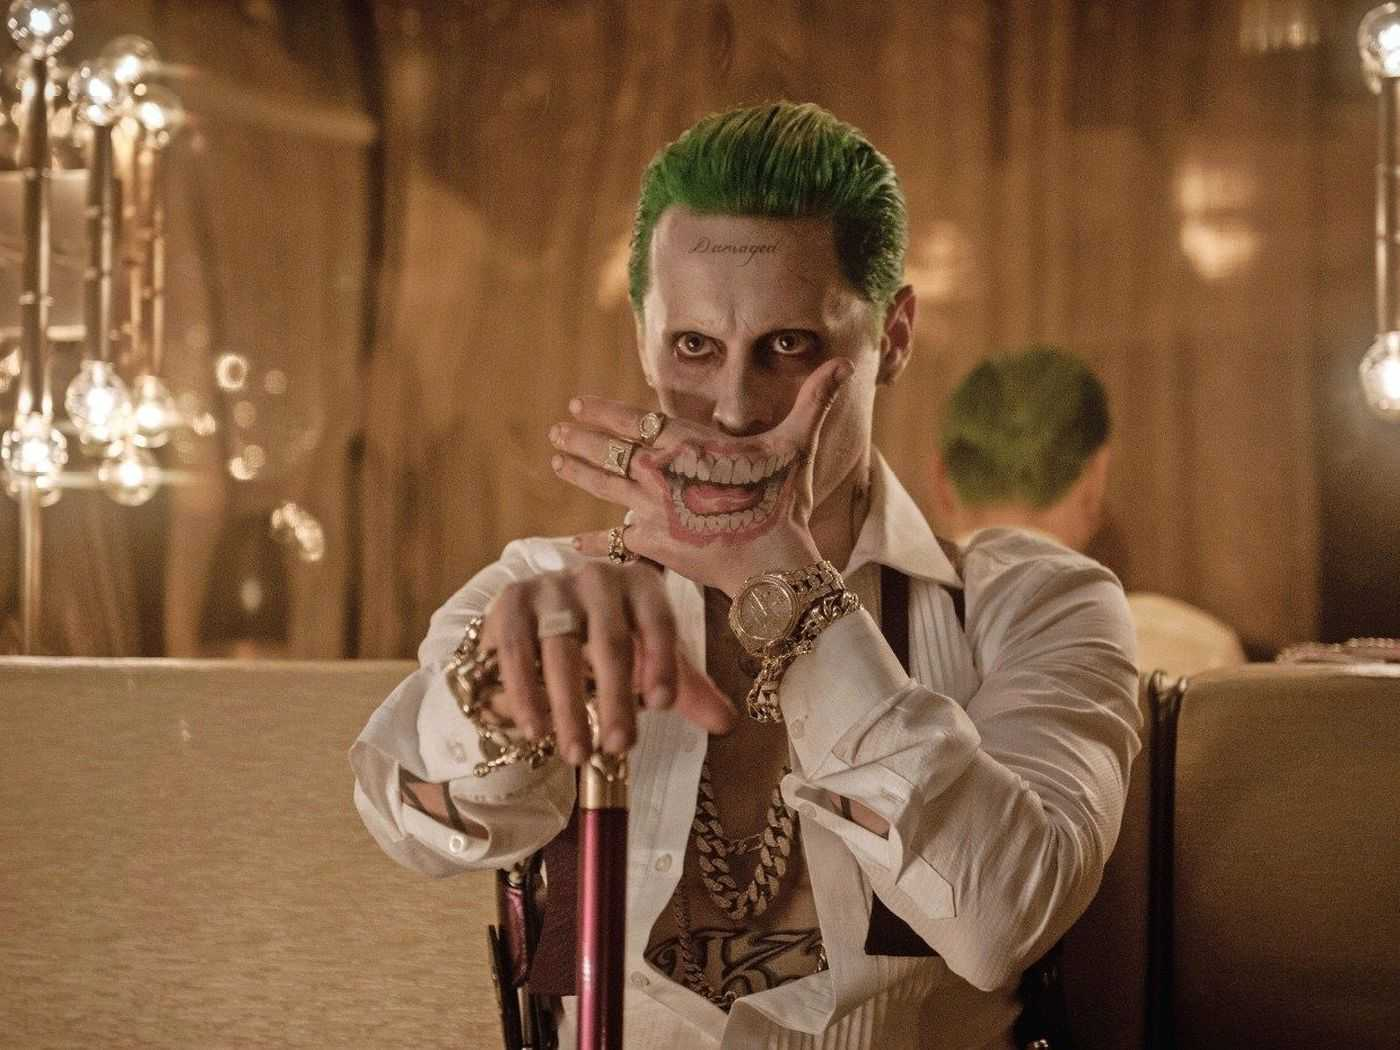 Justice League Jared Leto Joker